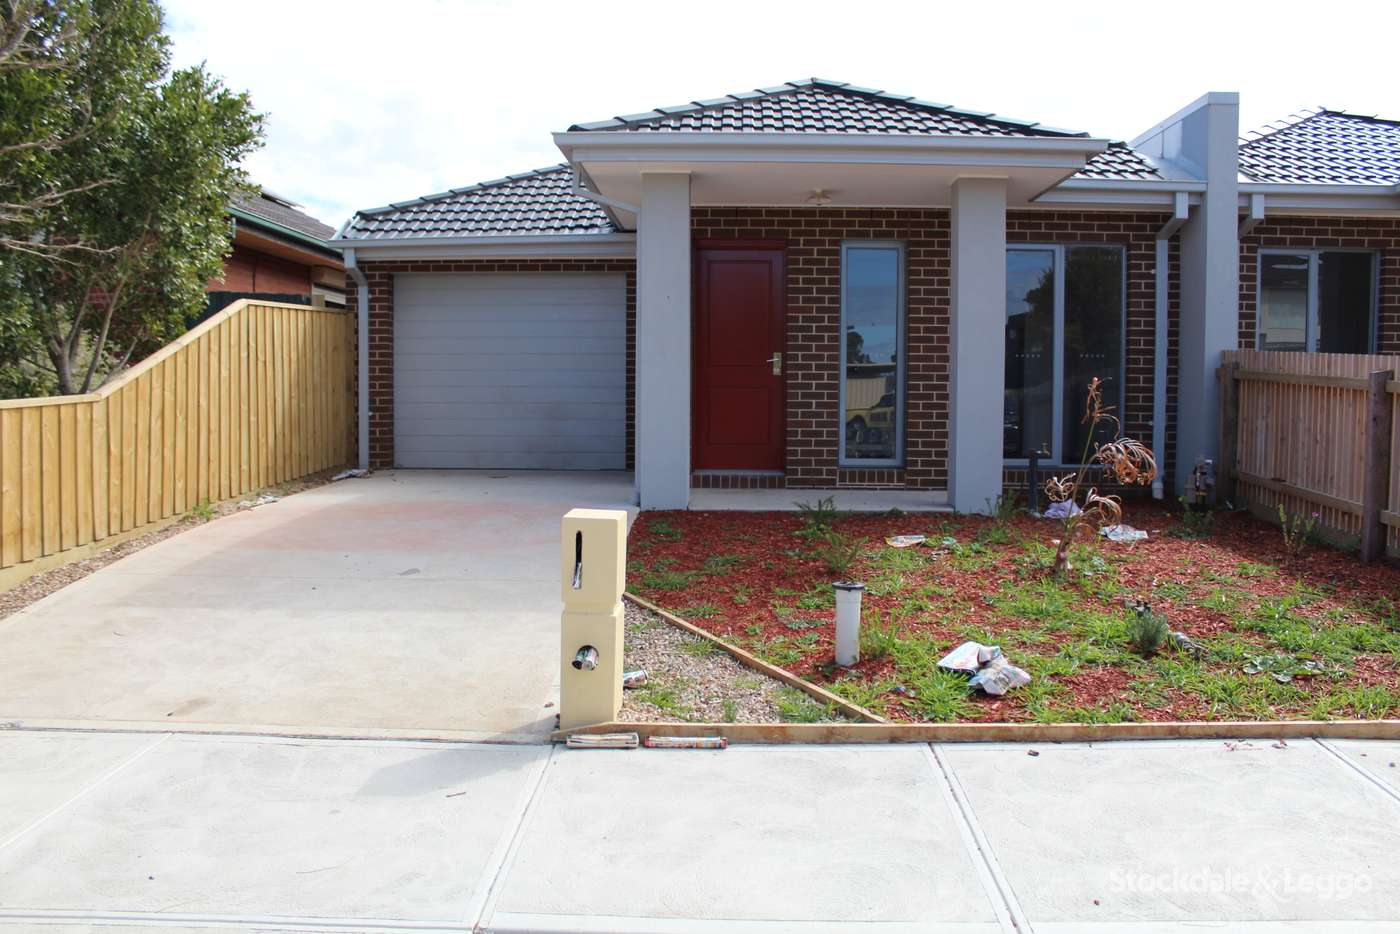 Main view of Homely house listing, 2/2 Butcher Crescent, Laverton VIC 3028